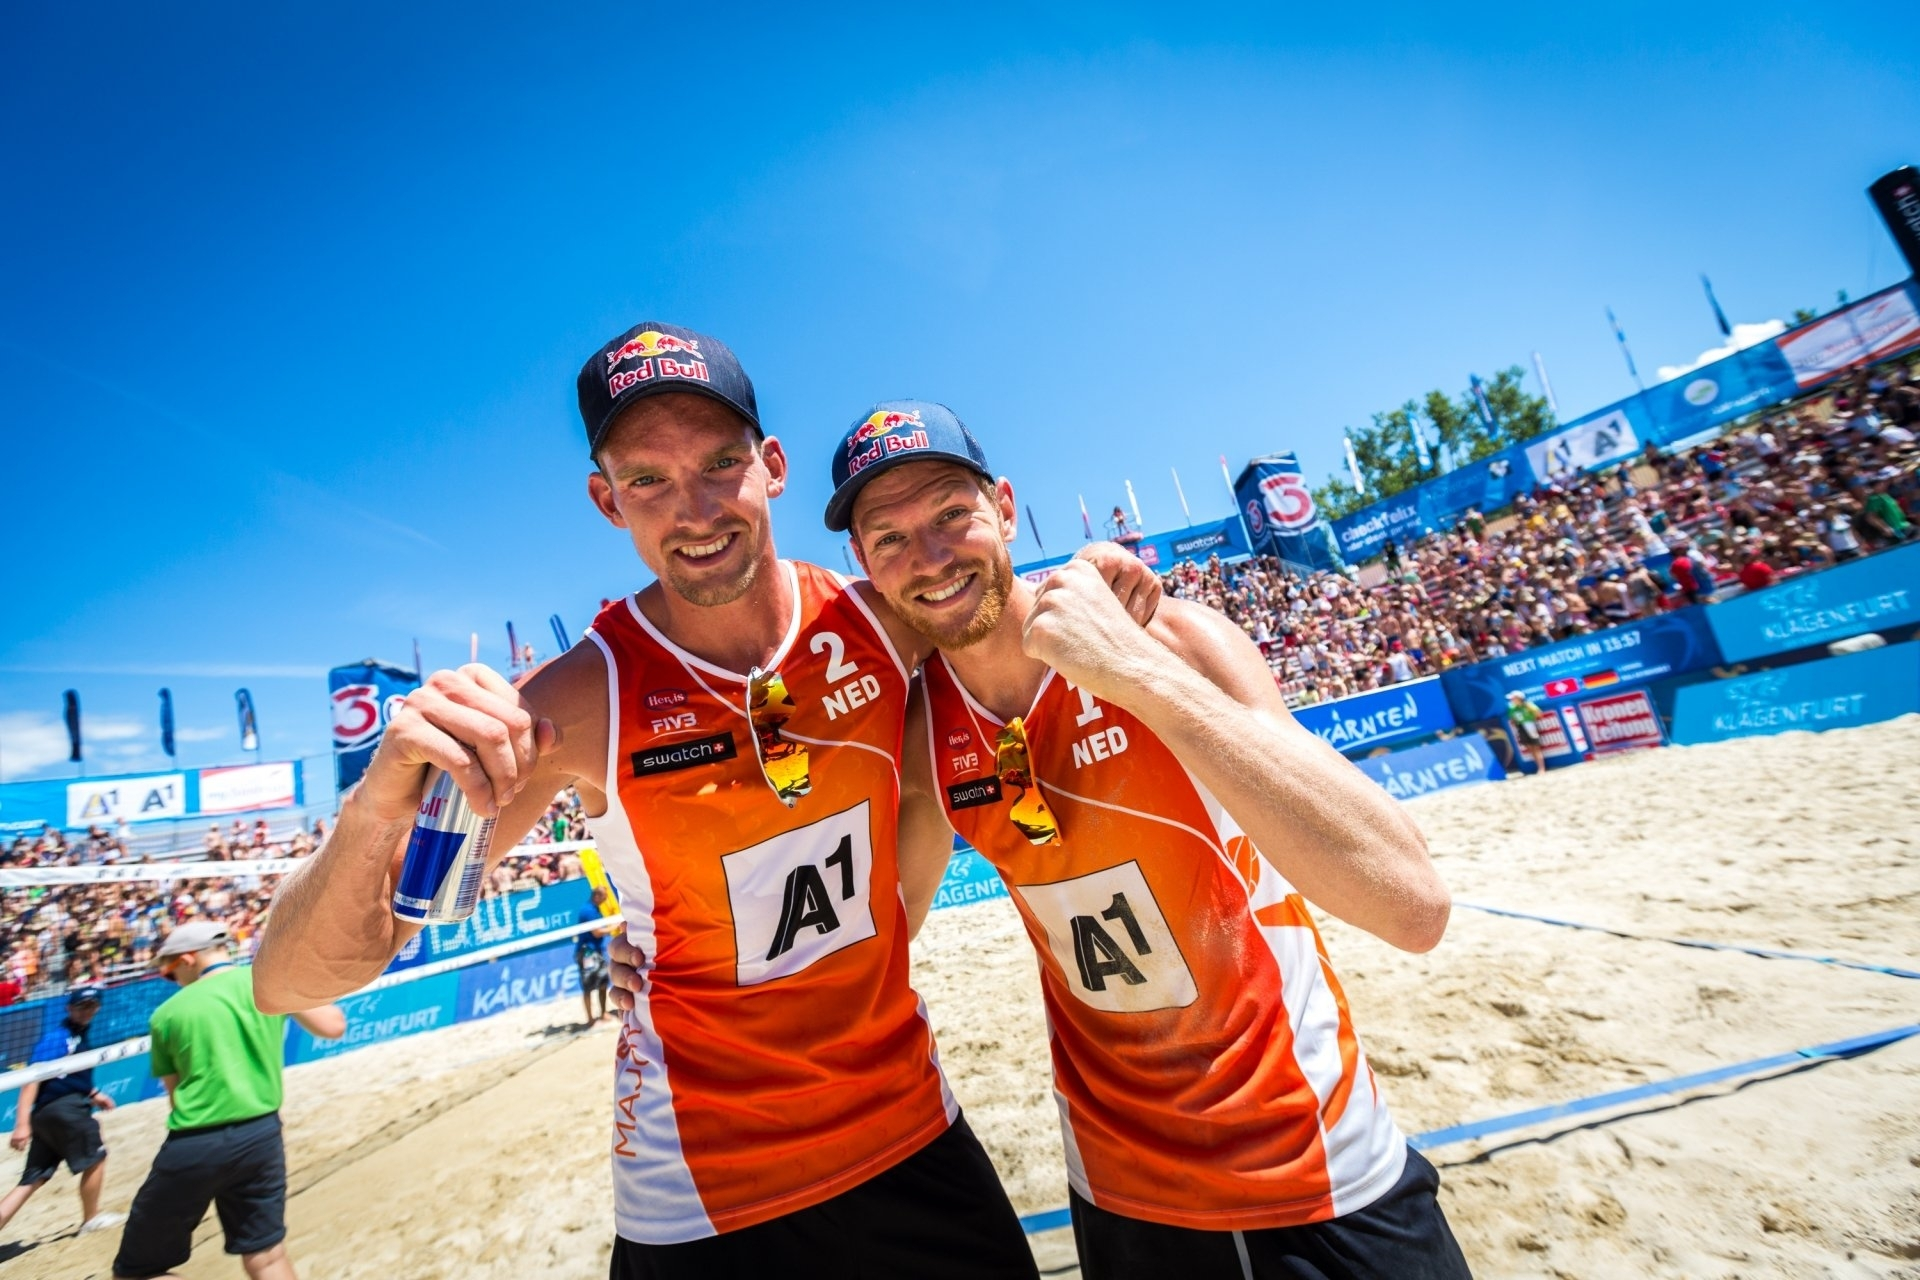 Alex and Robert ended a run of over two decades with a European men's gold medal in the US